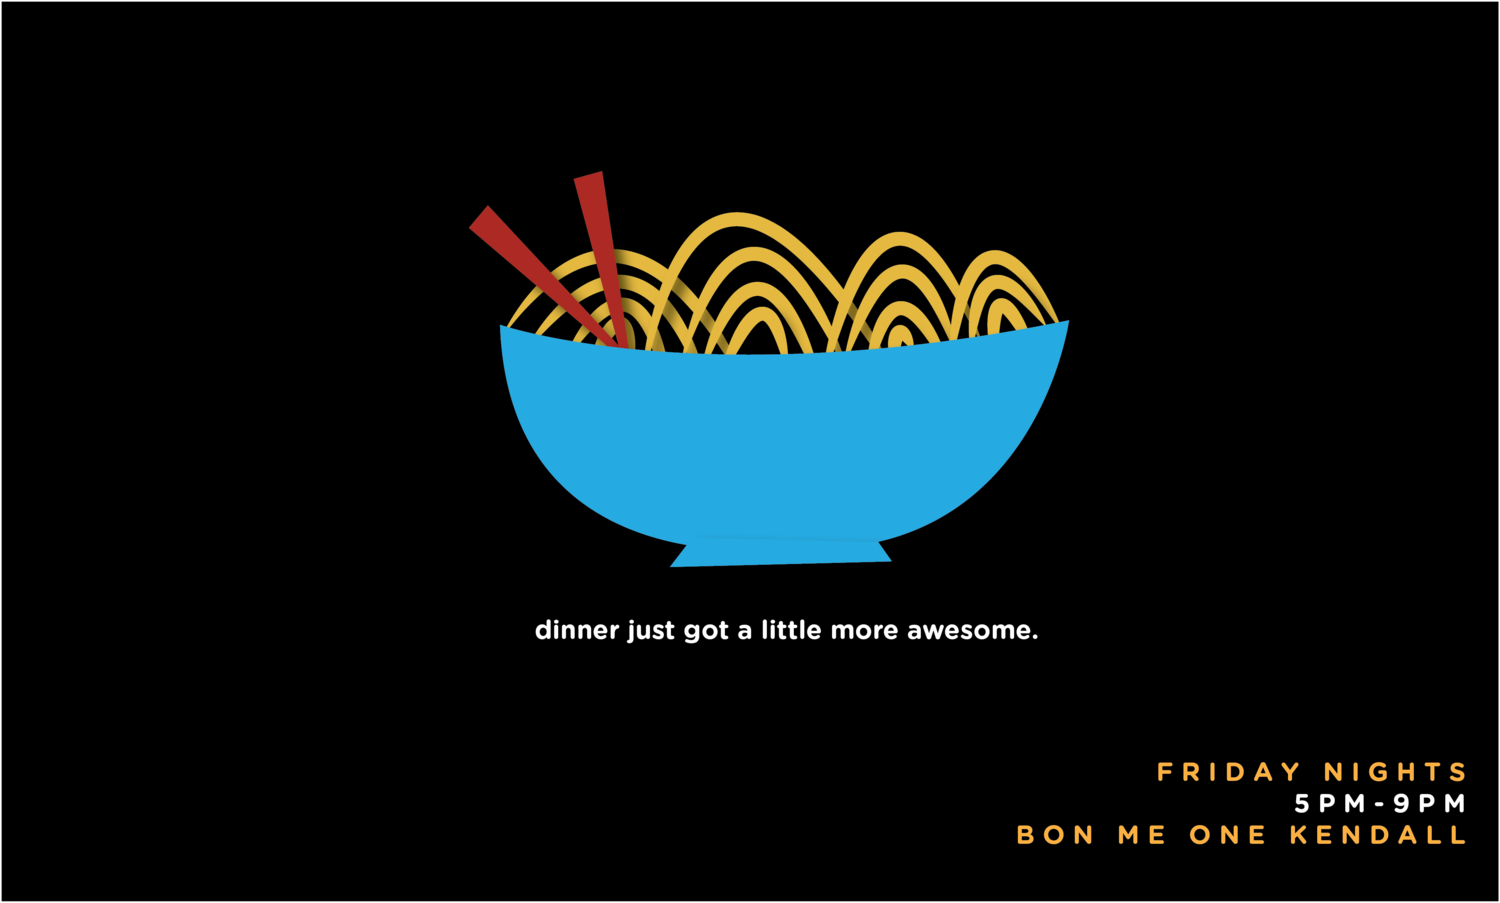 Bon Me - Noodle Stop. Friday nights only - 5pm-9pm